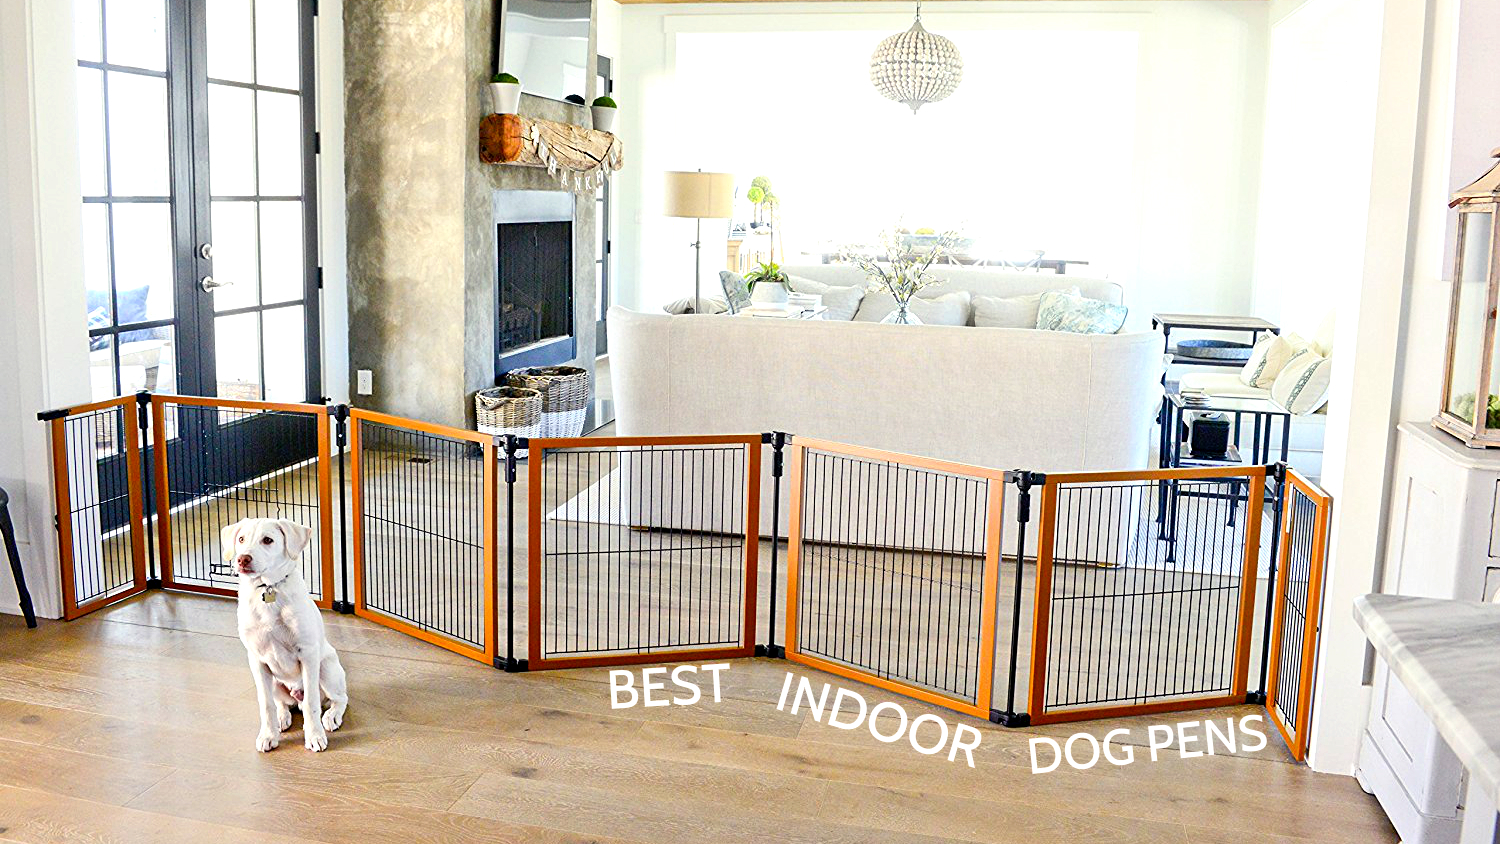 Best Indoor Dog Pens